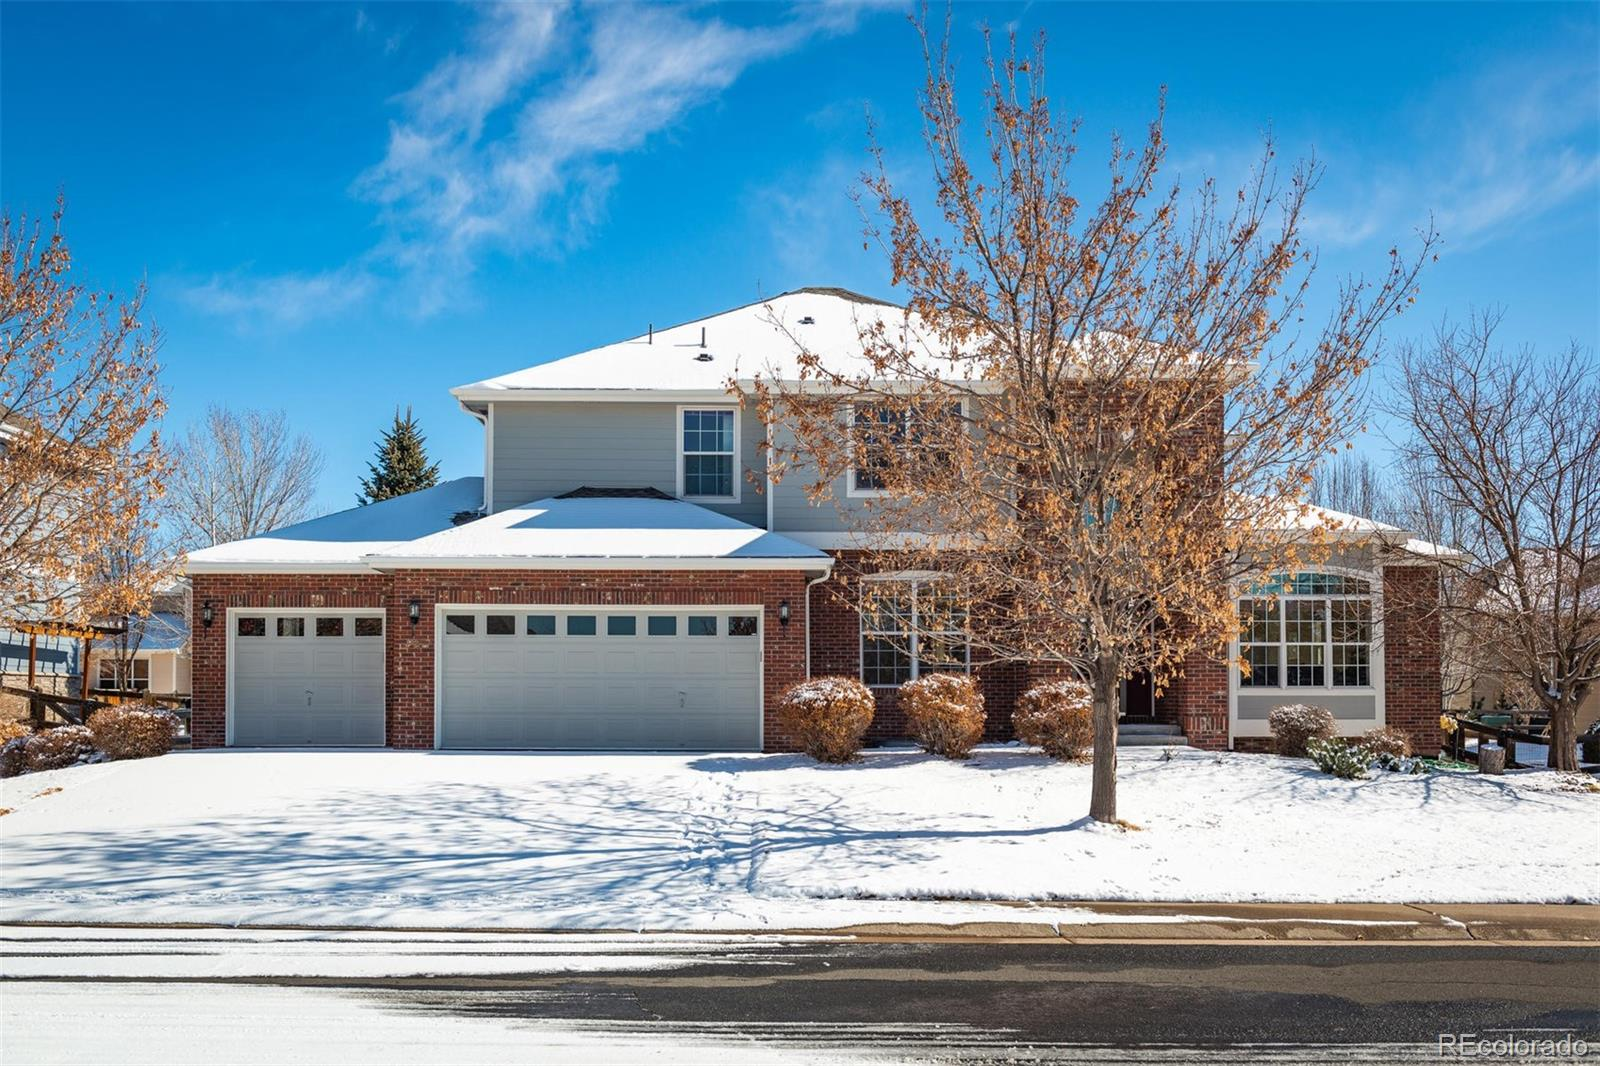 MLS# 3442851 - 1 - 6552 S Ouray Way, Aurora, CO 80016